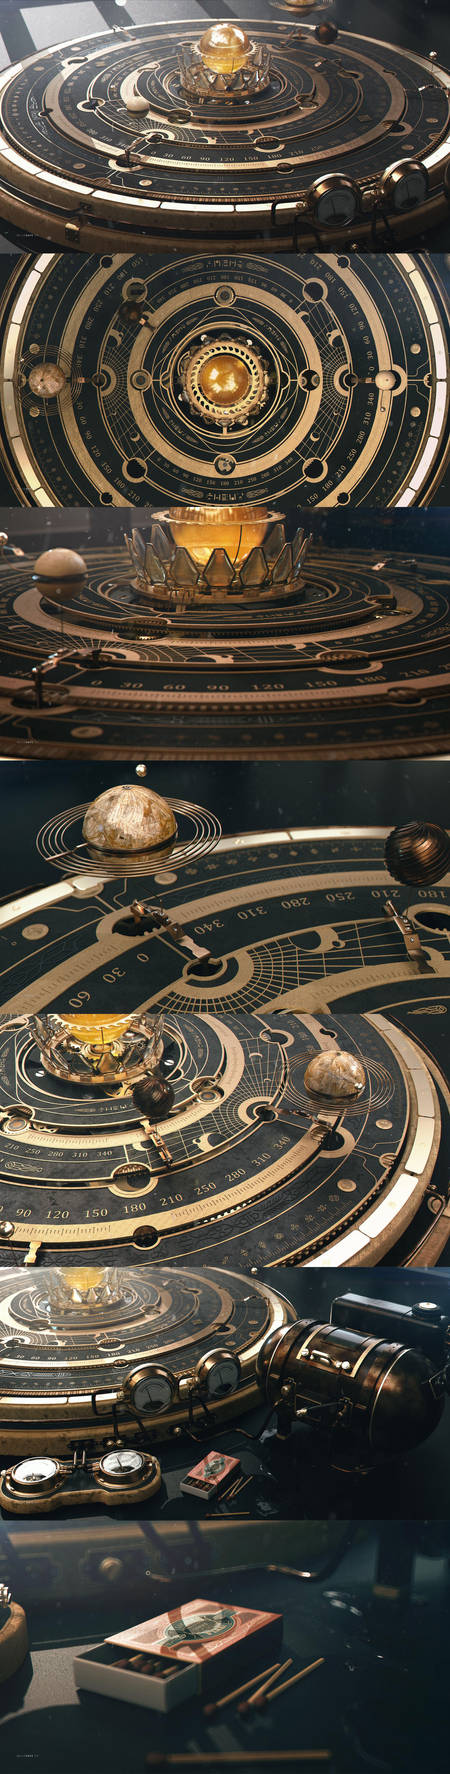 Steampunk Astrolabe Orrery Table